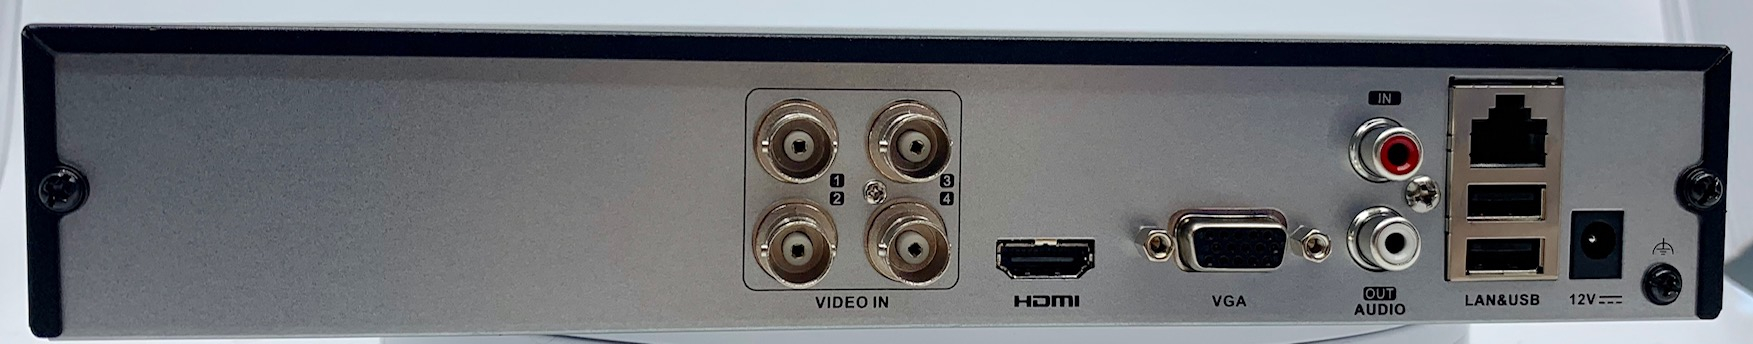 HiLook by Hikvision DVR-204Q-K1 4CH H265+ Turbo HD DVR [HL-3655]